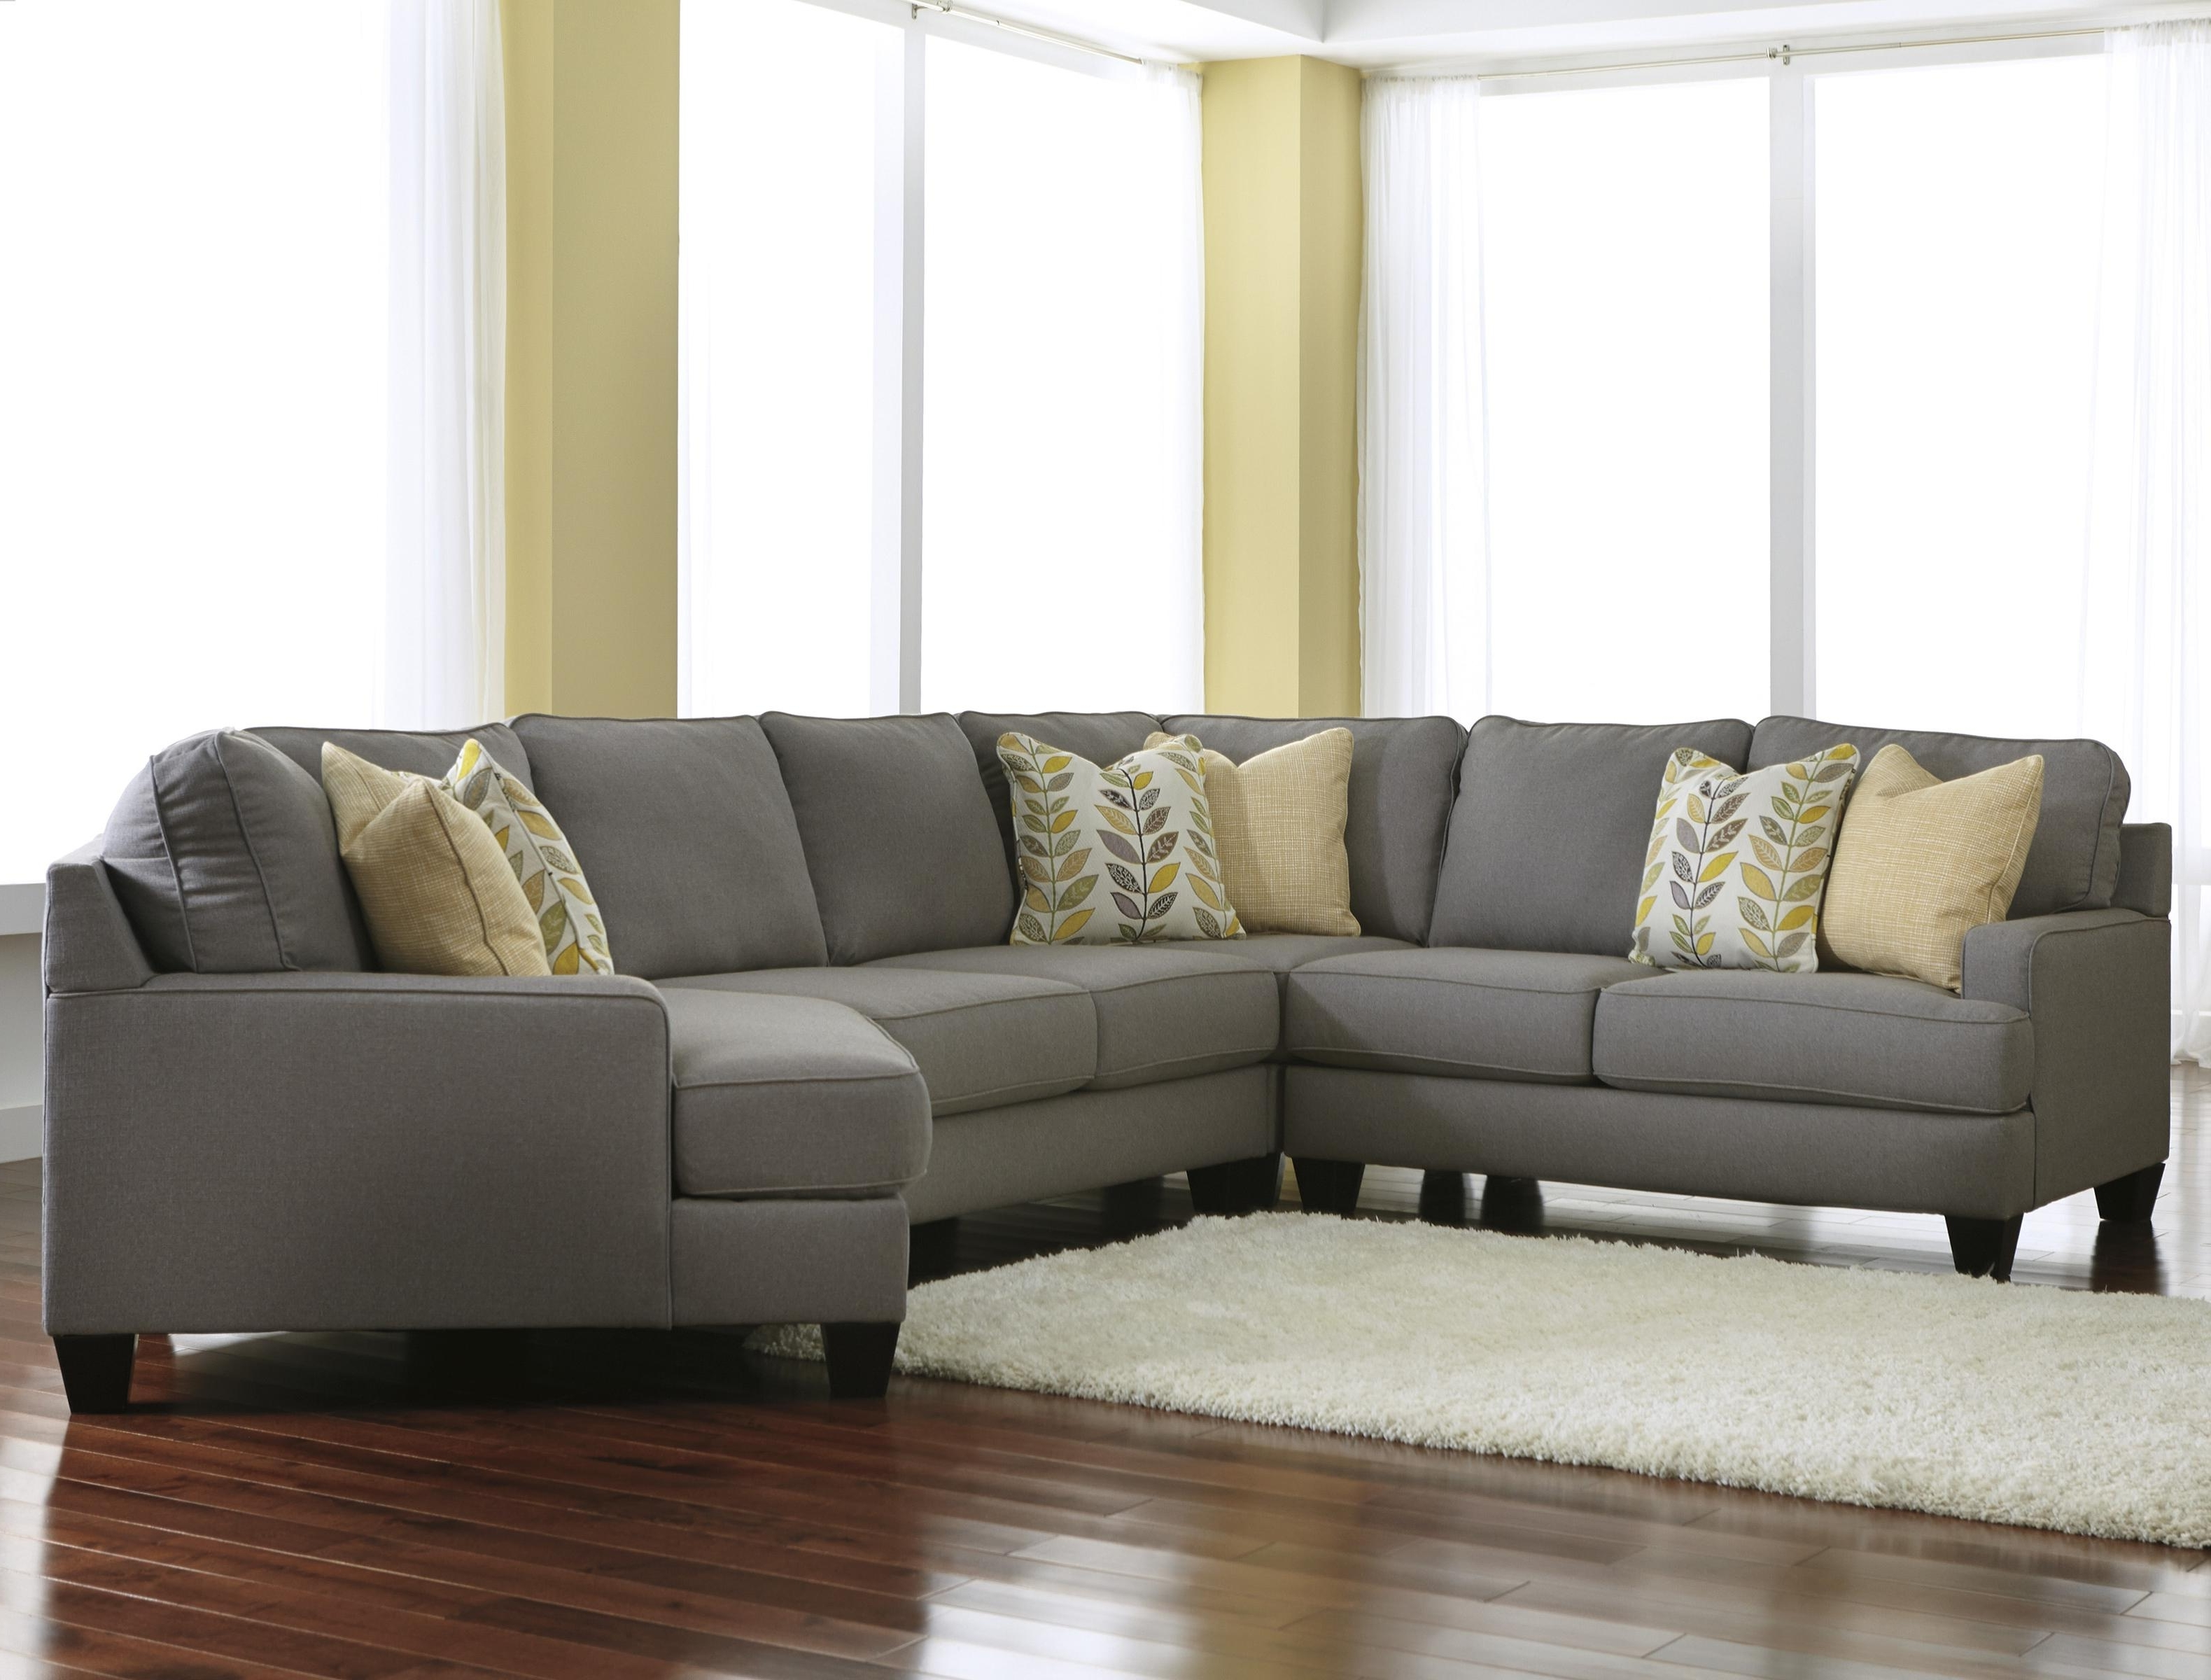 Sectional Sofas With Cuddler With Best And Newest Modern 4 Piece Sectional Sofa With Right Cuddler & Reversible Seat (View 18 of 20)